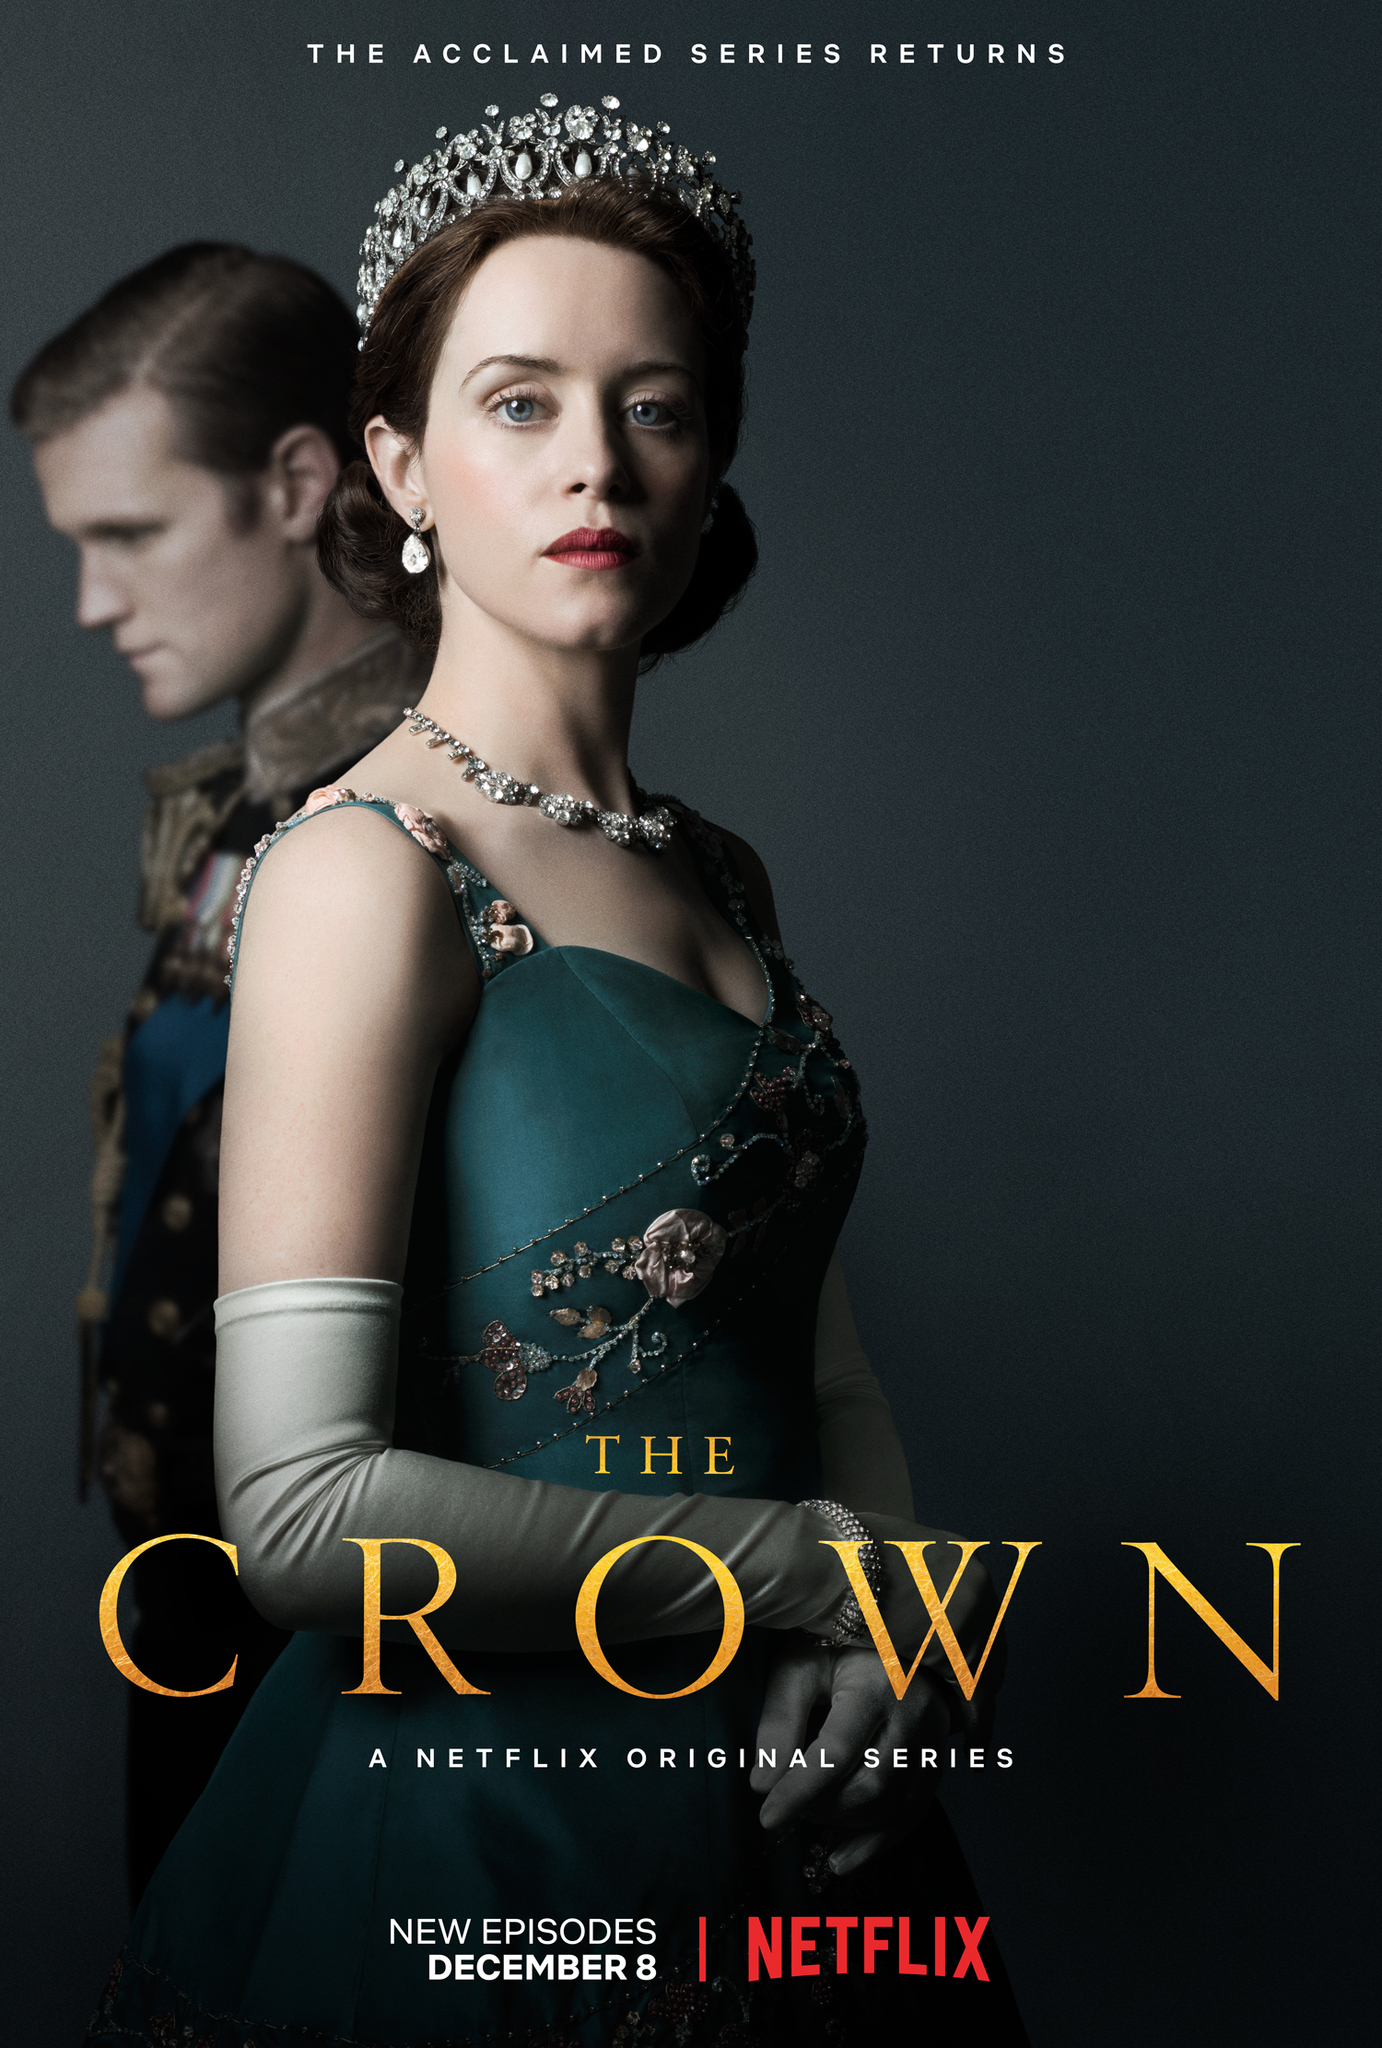 The.Crown.S02E02.iNTERNAL.MULTi.1080p.WEB.x264-CiELOS